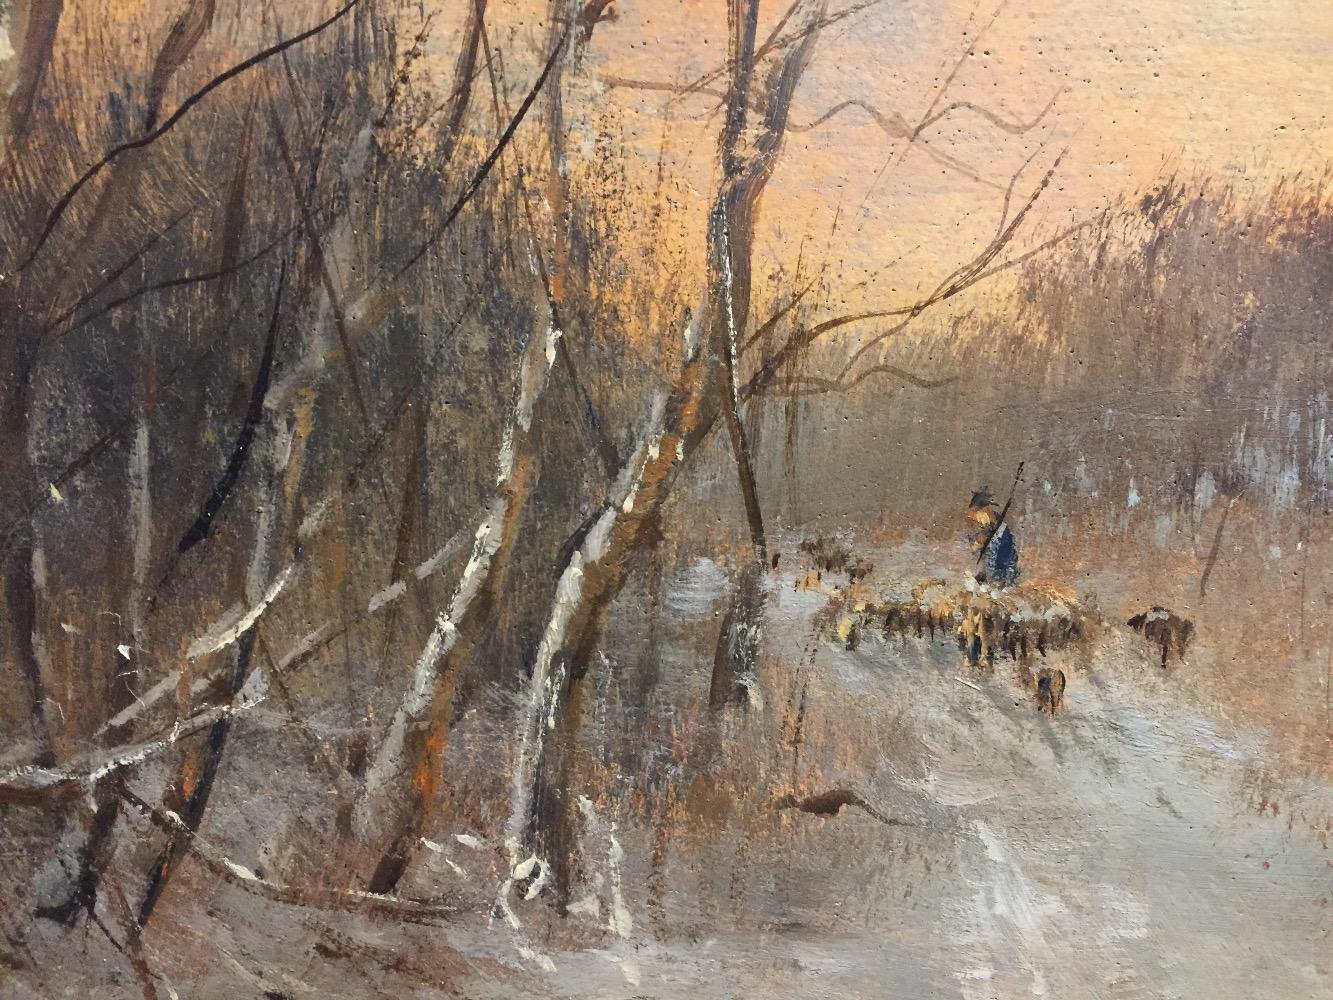 Shepherd with his sheep in the wintertime